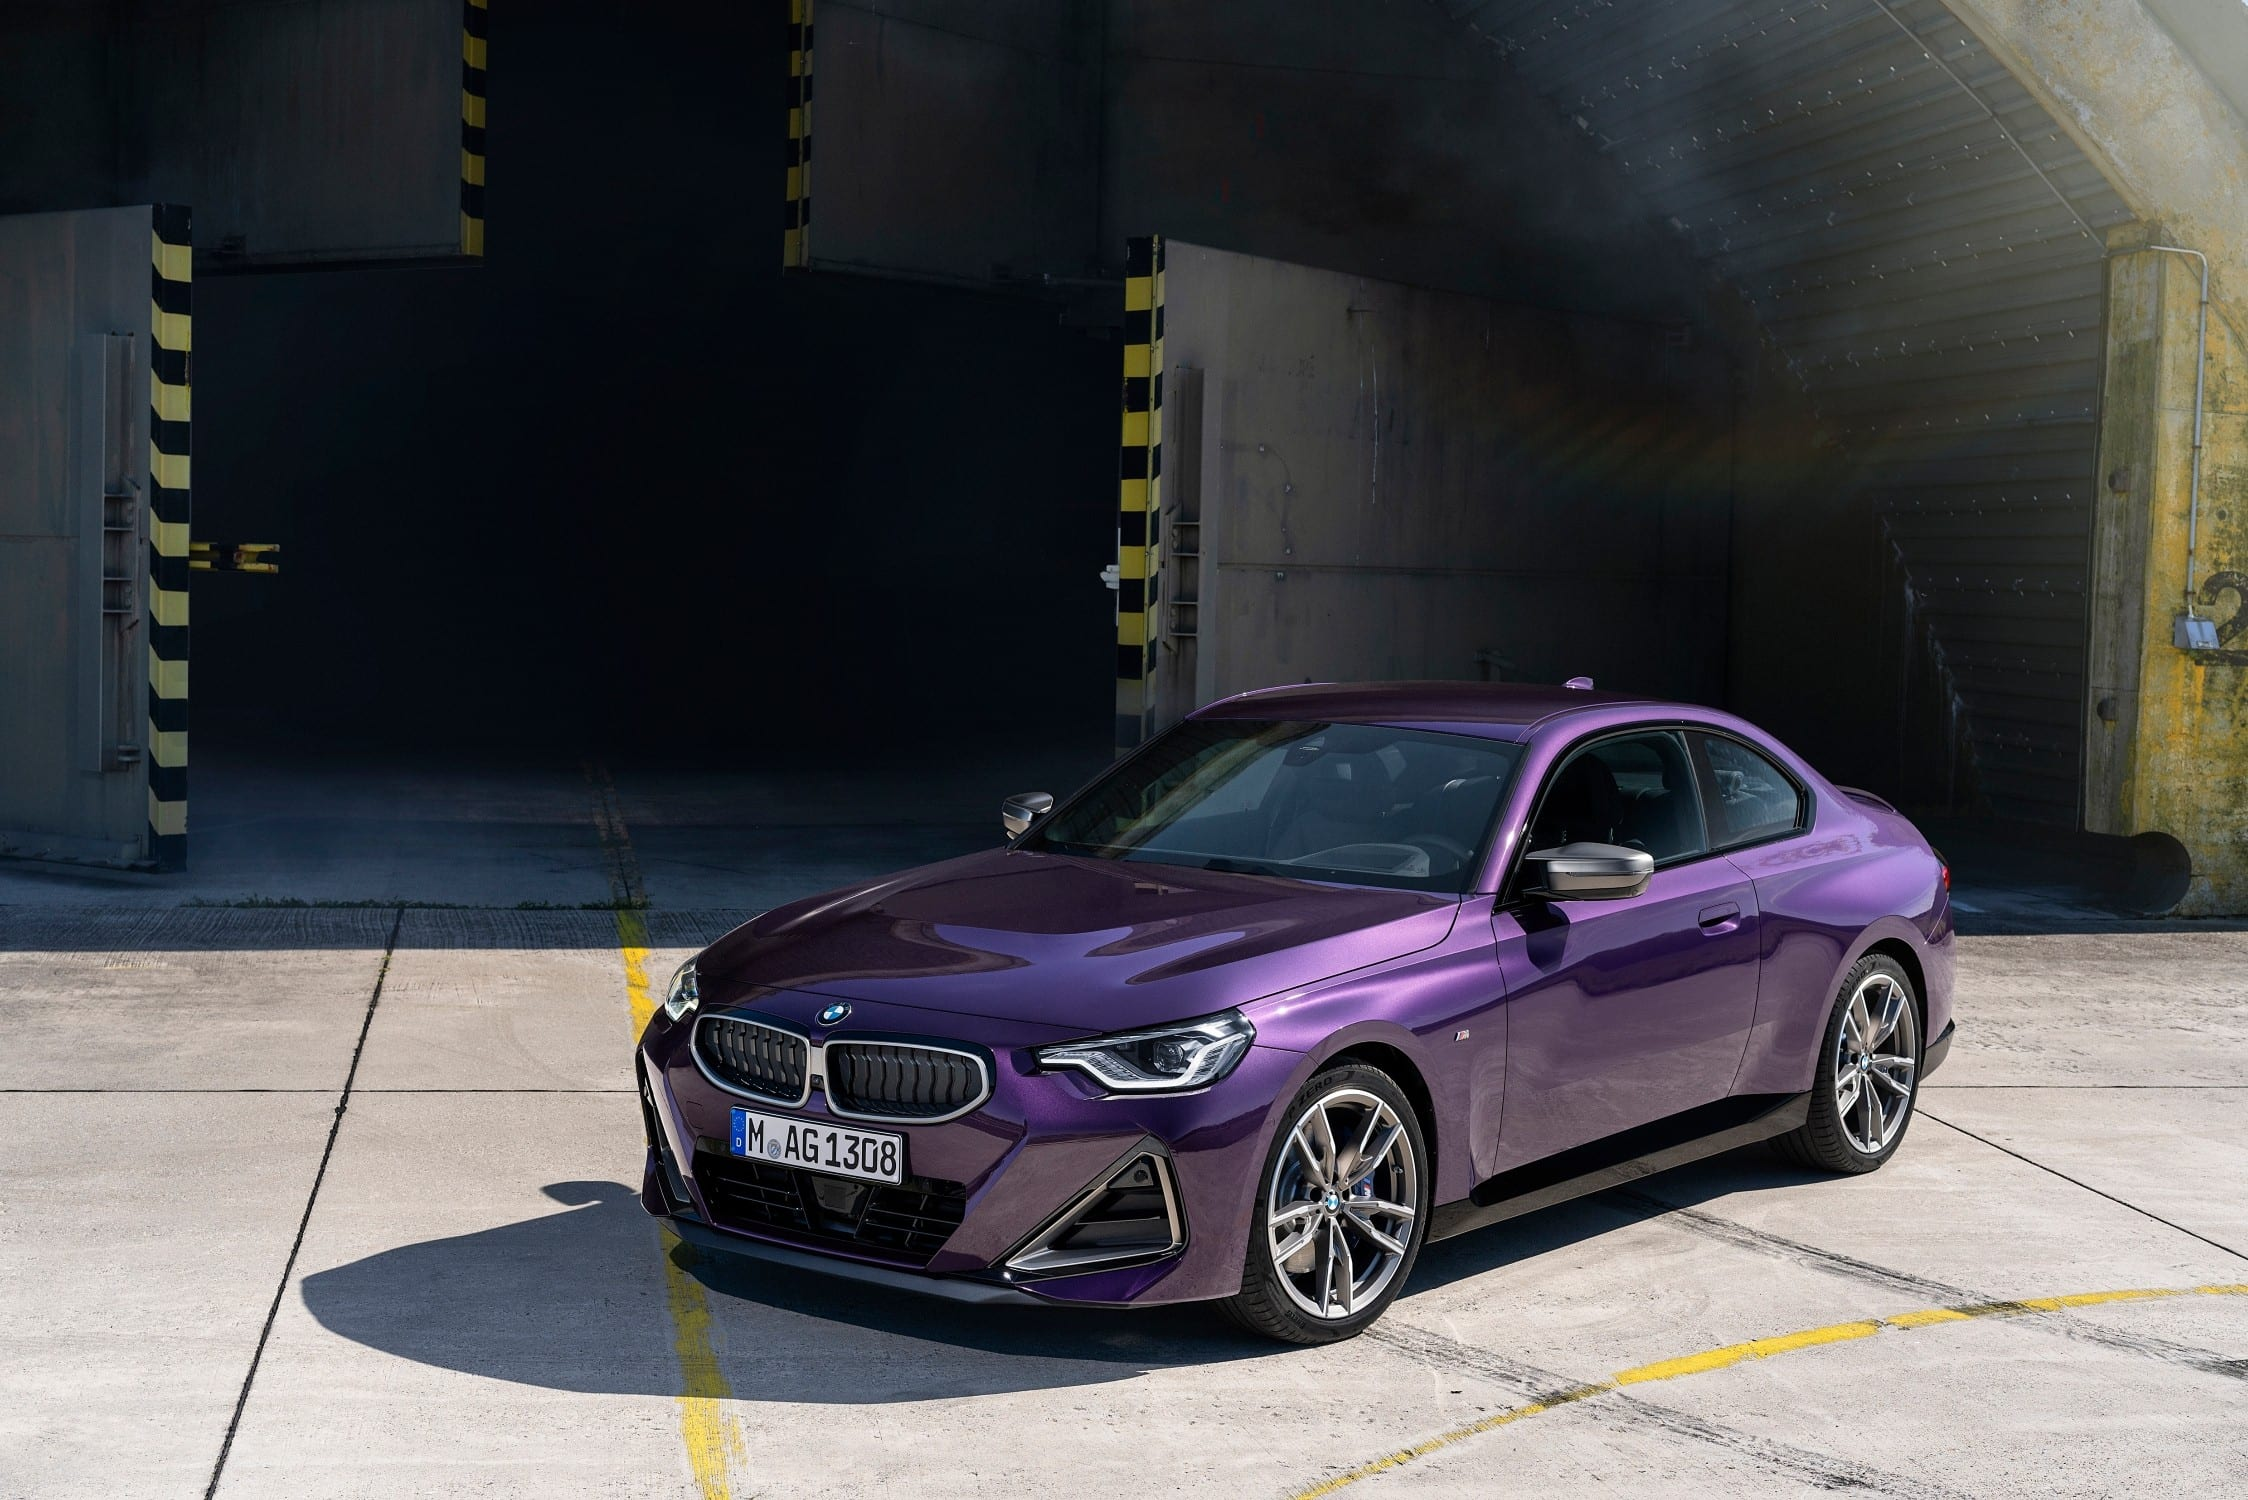 Here's a glimpse into the upcoming BMW 2 Series